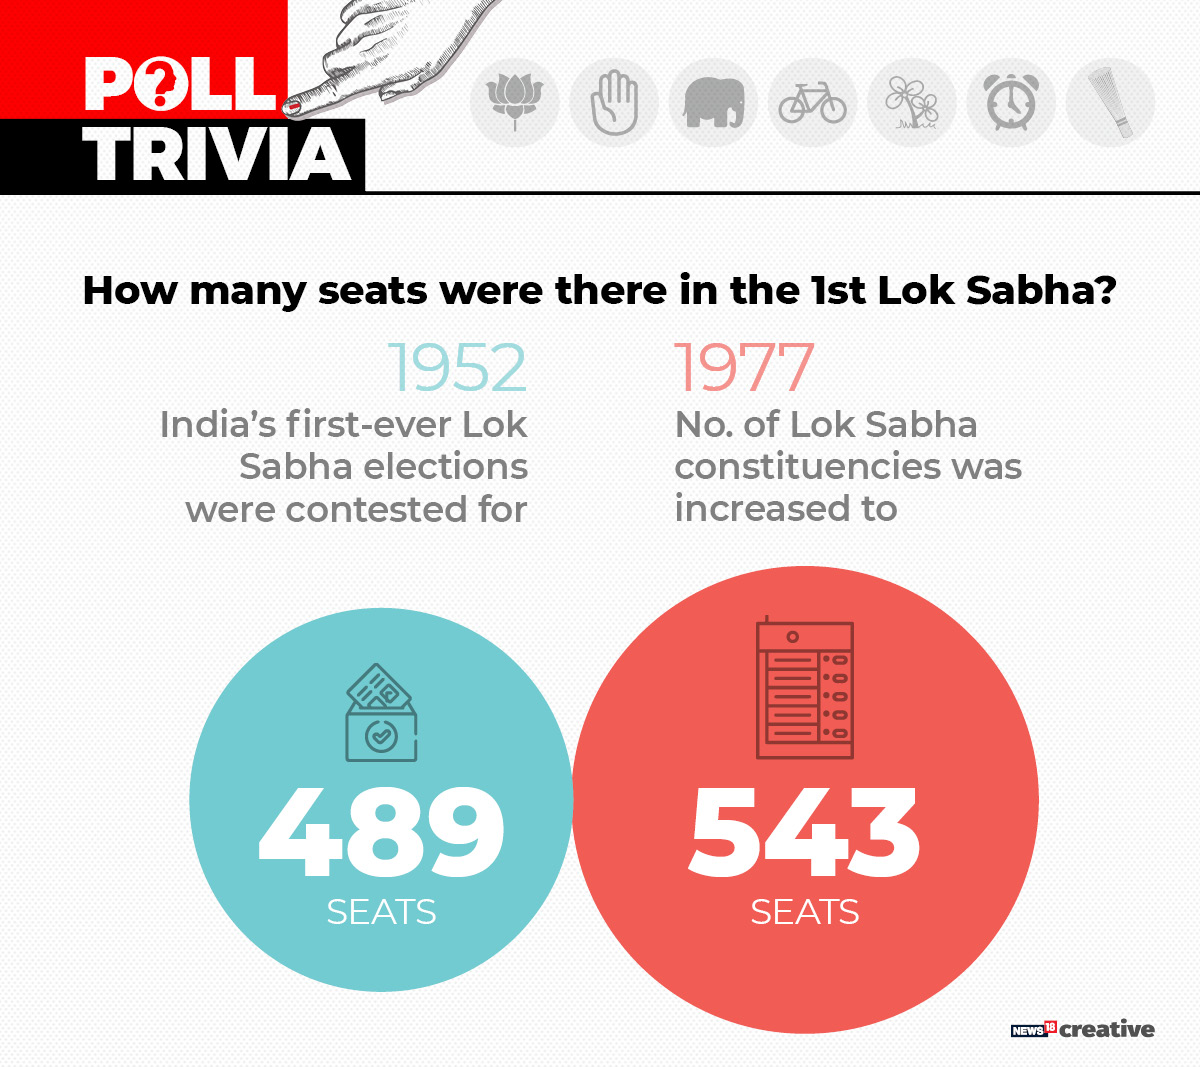 How many seats were there in the first Lok Sabha?